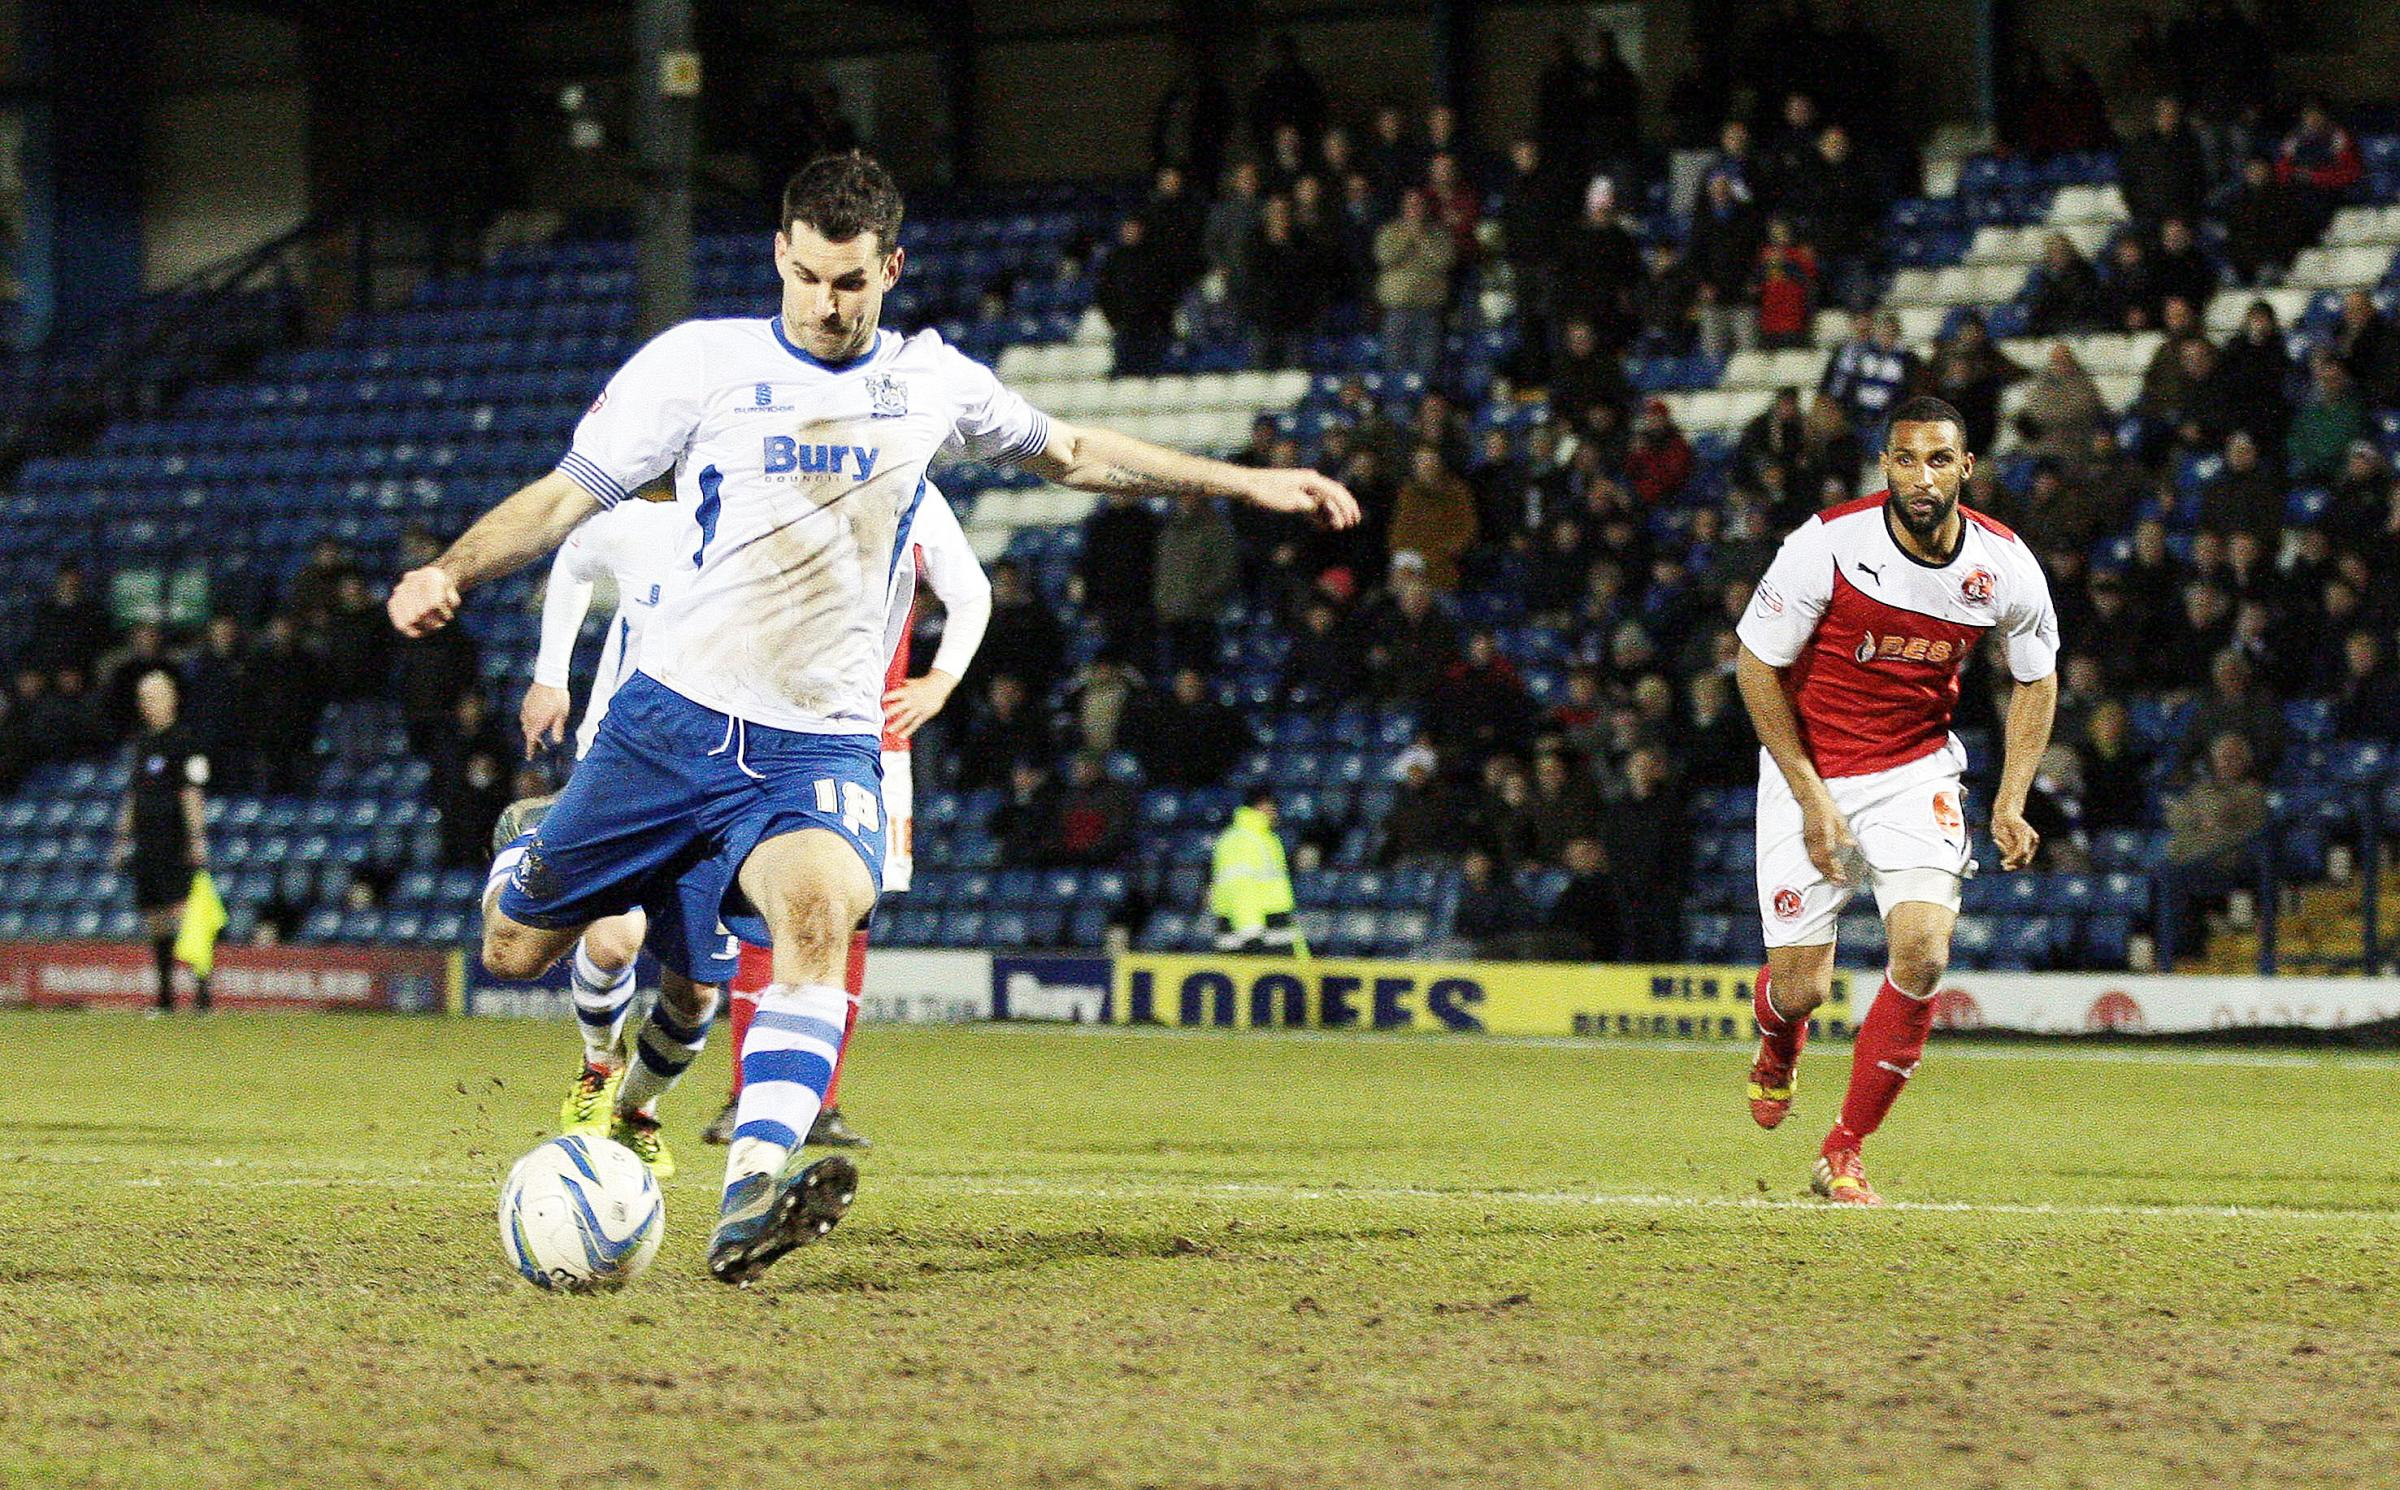 Daniel Nardiello slots home his second of the night from the penalty spot in bury's 2-2 draw with Fleetwood Town